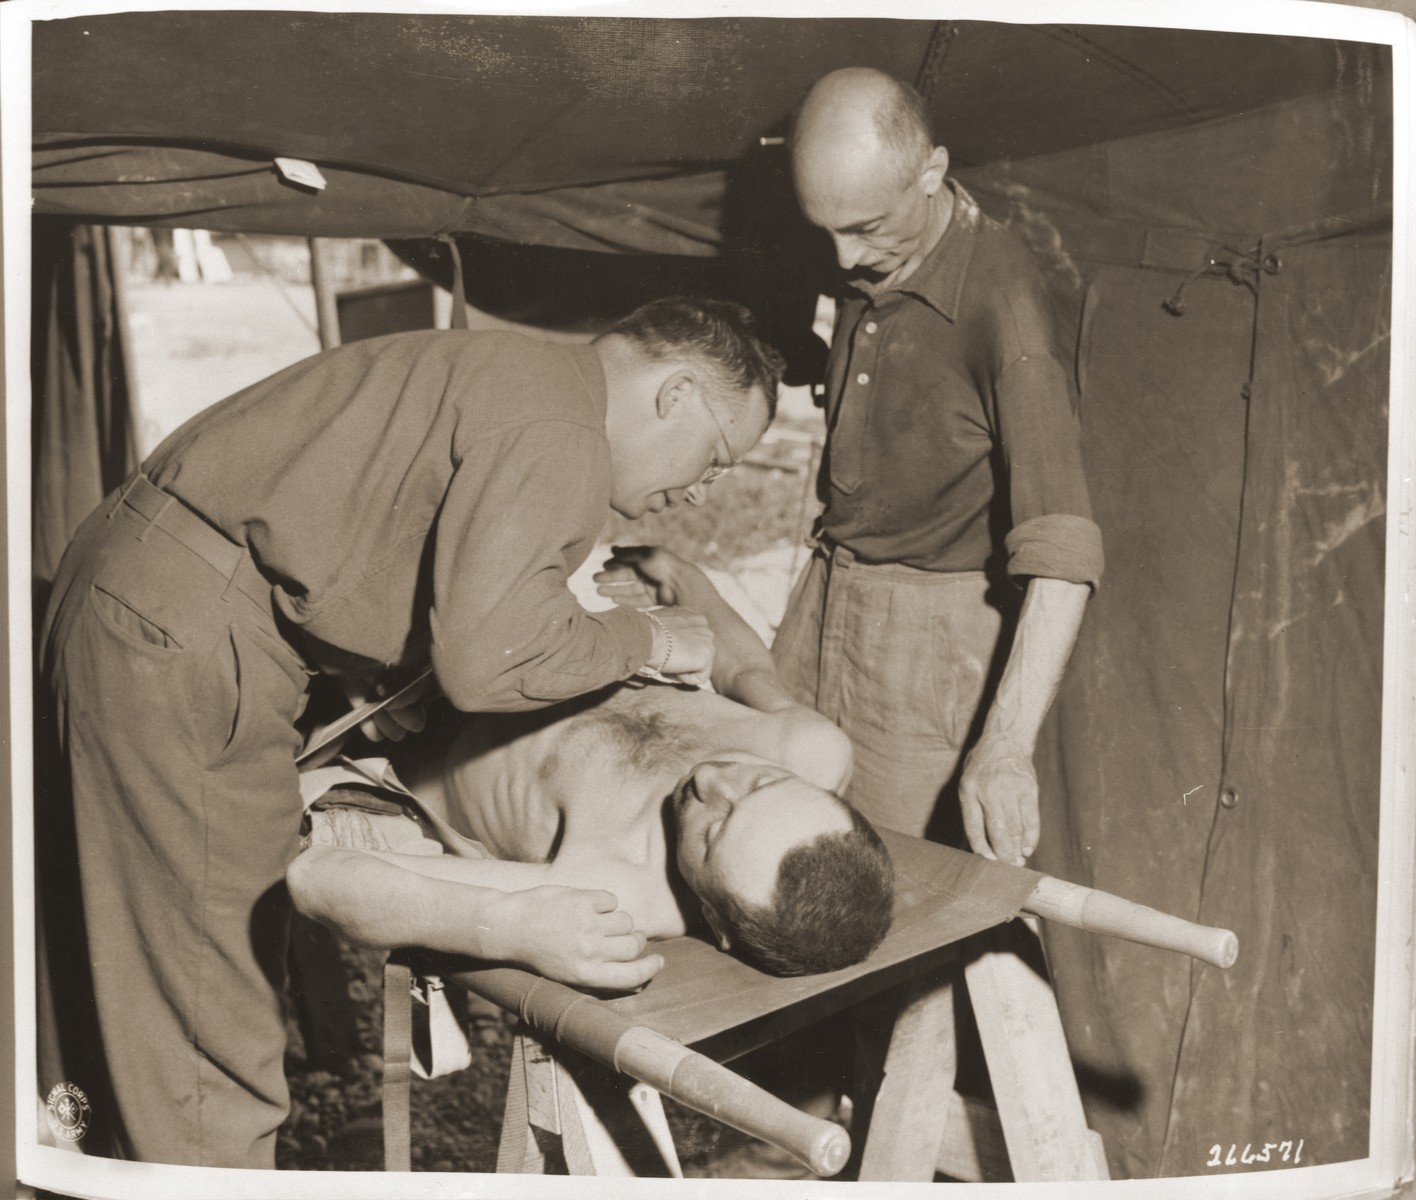 Captain Robert A. Baker of Newberry, S.C., gives medical attention to a former concentration camp prisoner suffering from malnutrition in an airport at Neubau.